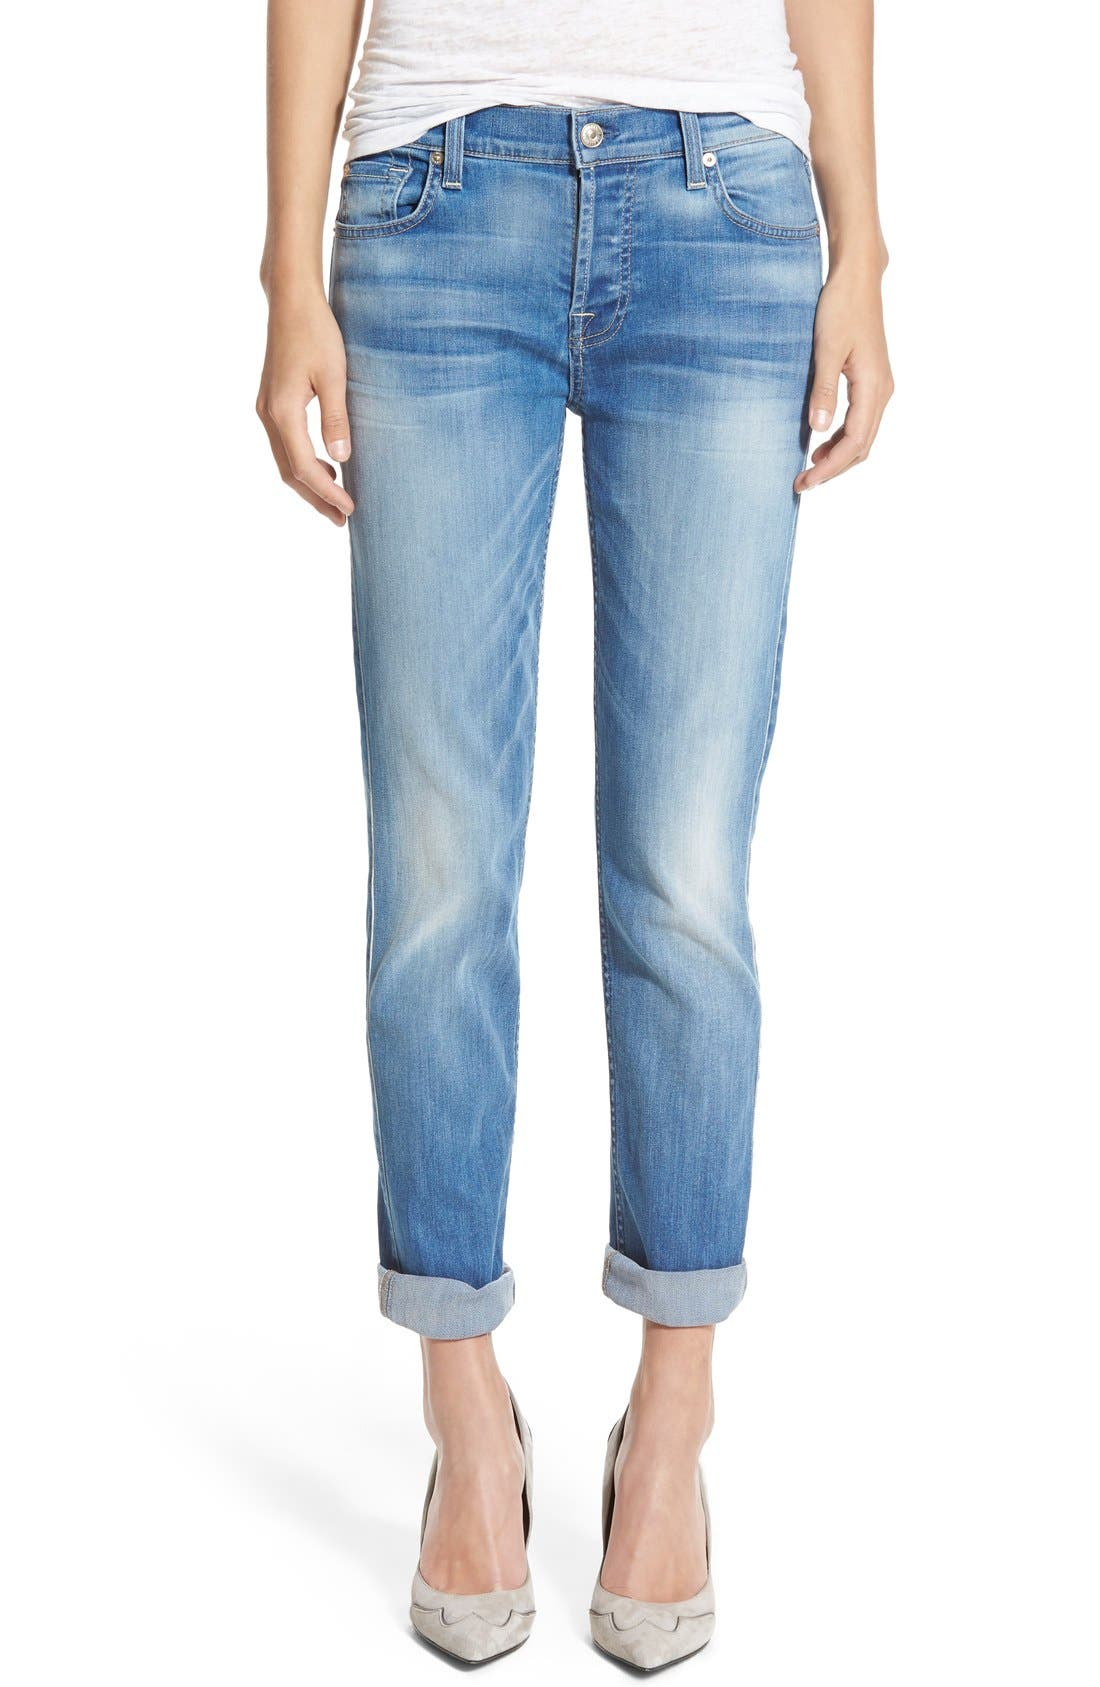 Alternate Image 1 Selected - 7 For All Mankind® 'Josefina' Boyfriend Jeans (Icicle Blue)